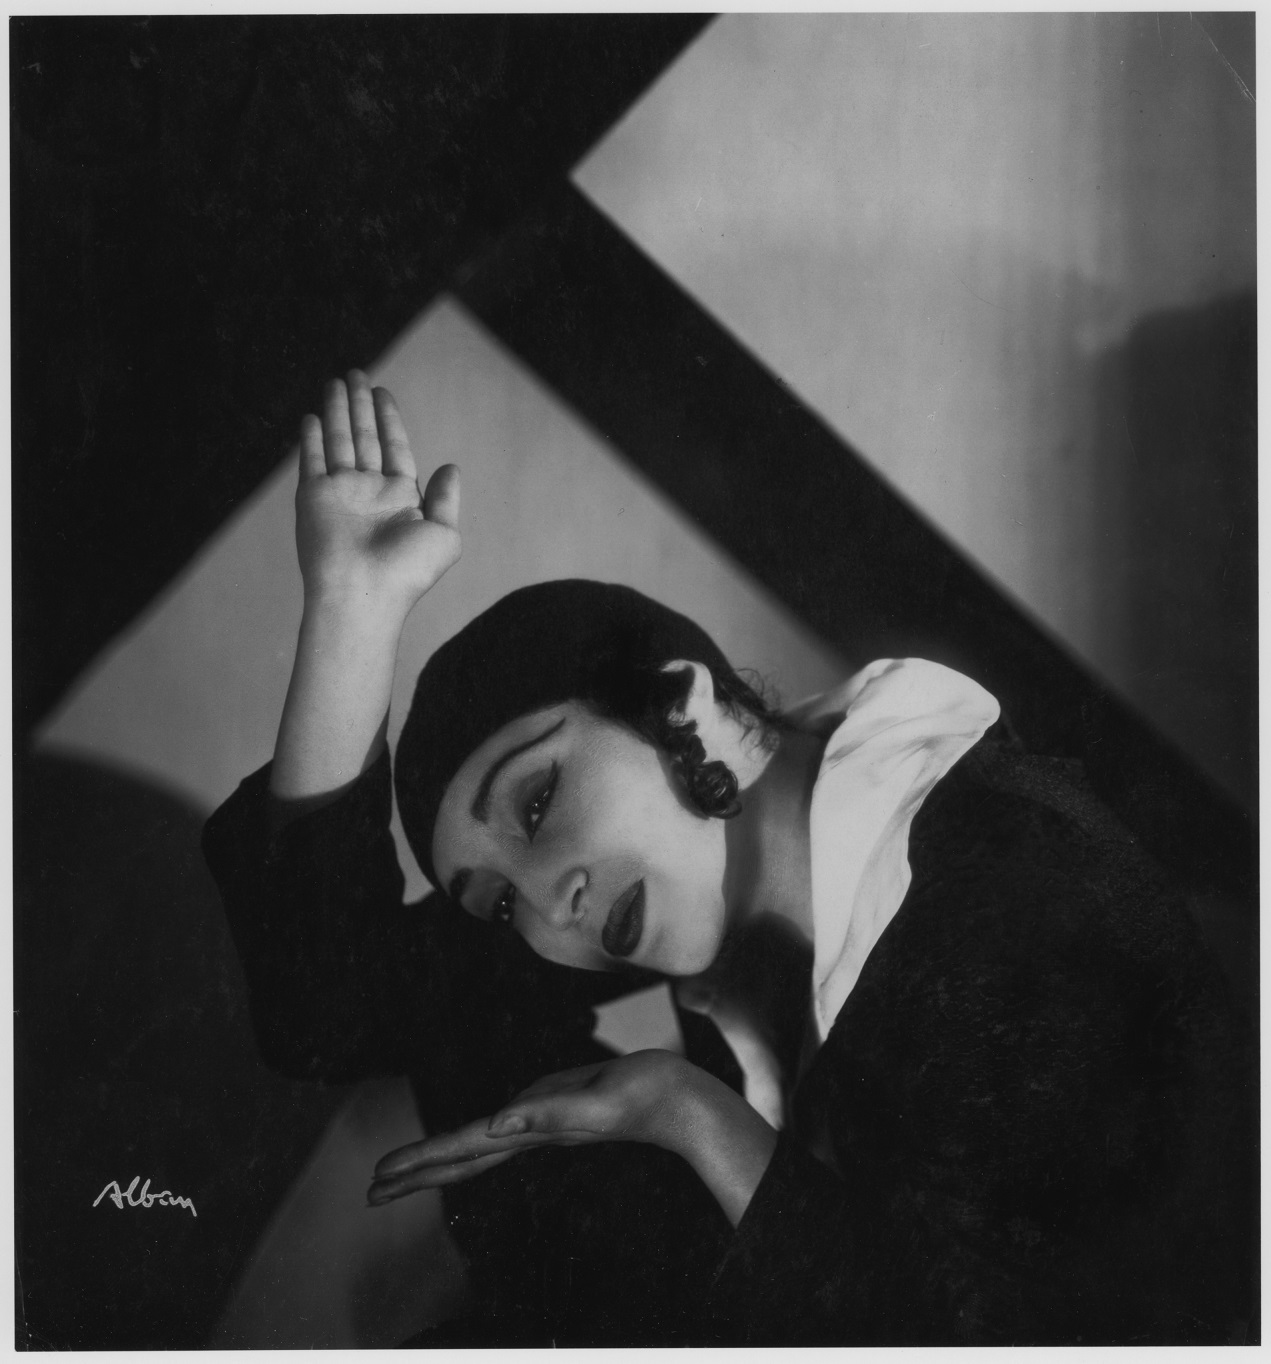 <p><em>Pauline Koner in Chassidic Song and Dance (1931). Photograph: Aram Alban. Courtesy of the Jerome Robbins Dance Division, the New York Public Library for the Performing Arts, Astor, Lenox and Tilden&nbsp;Foundations.</em></p>